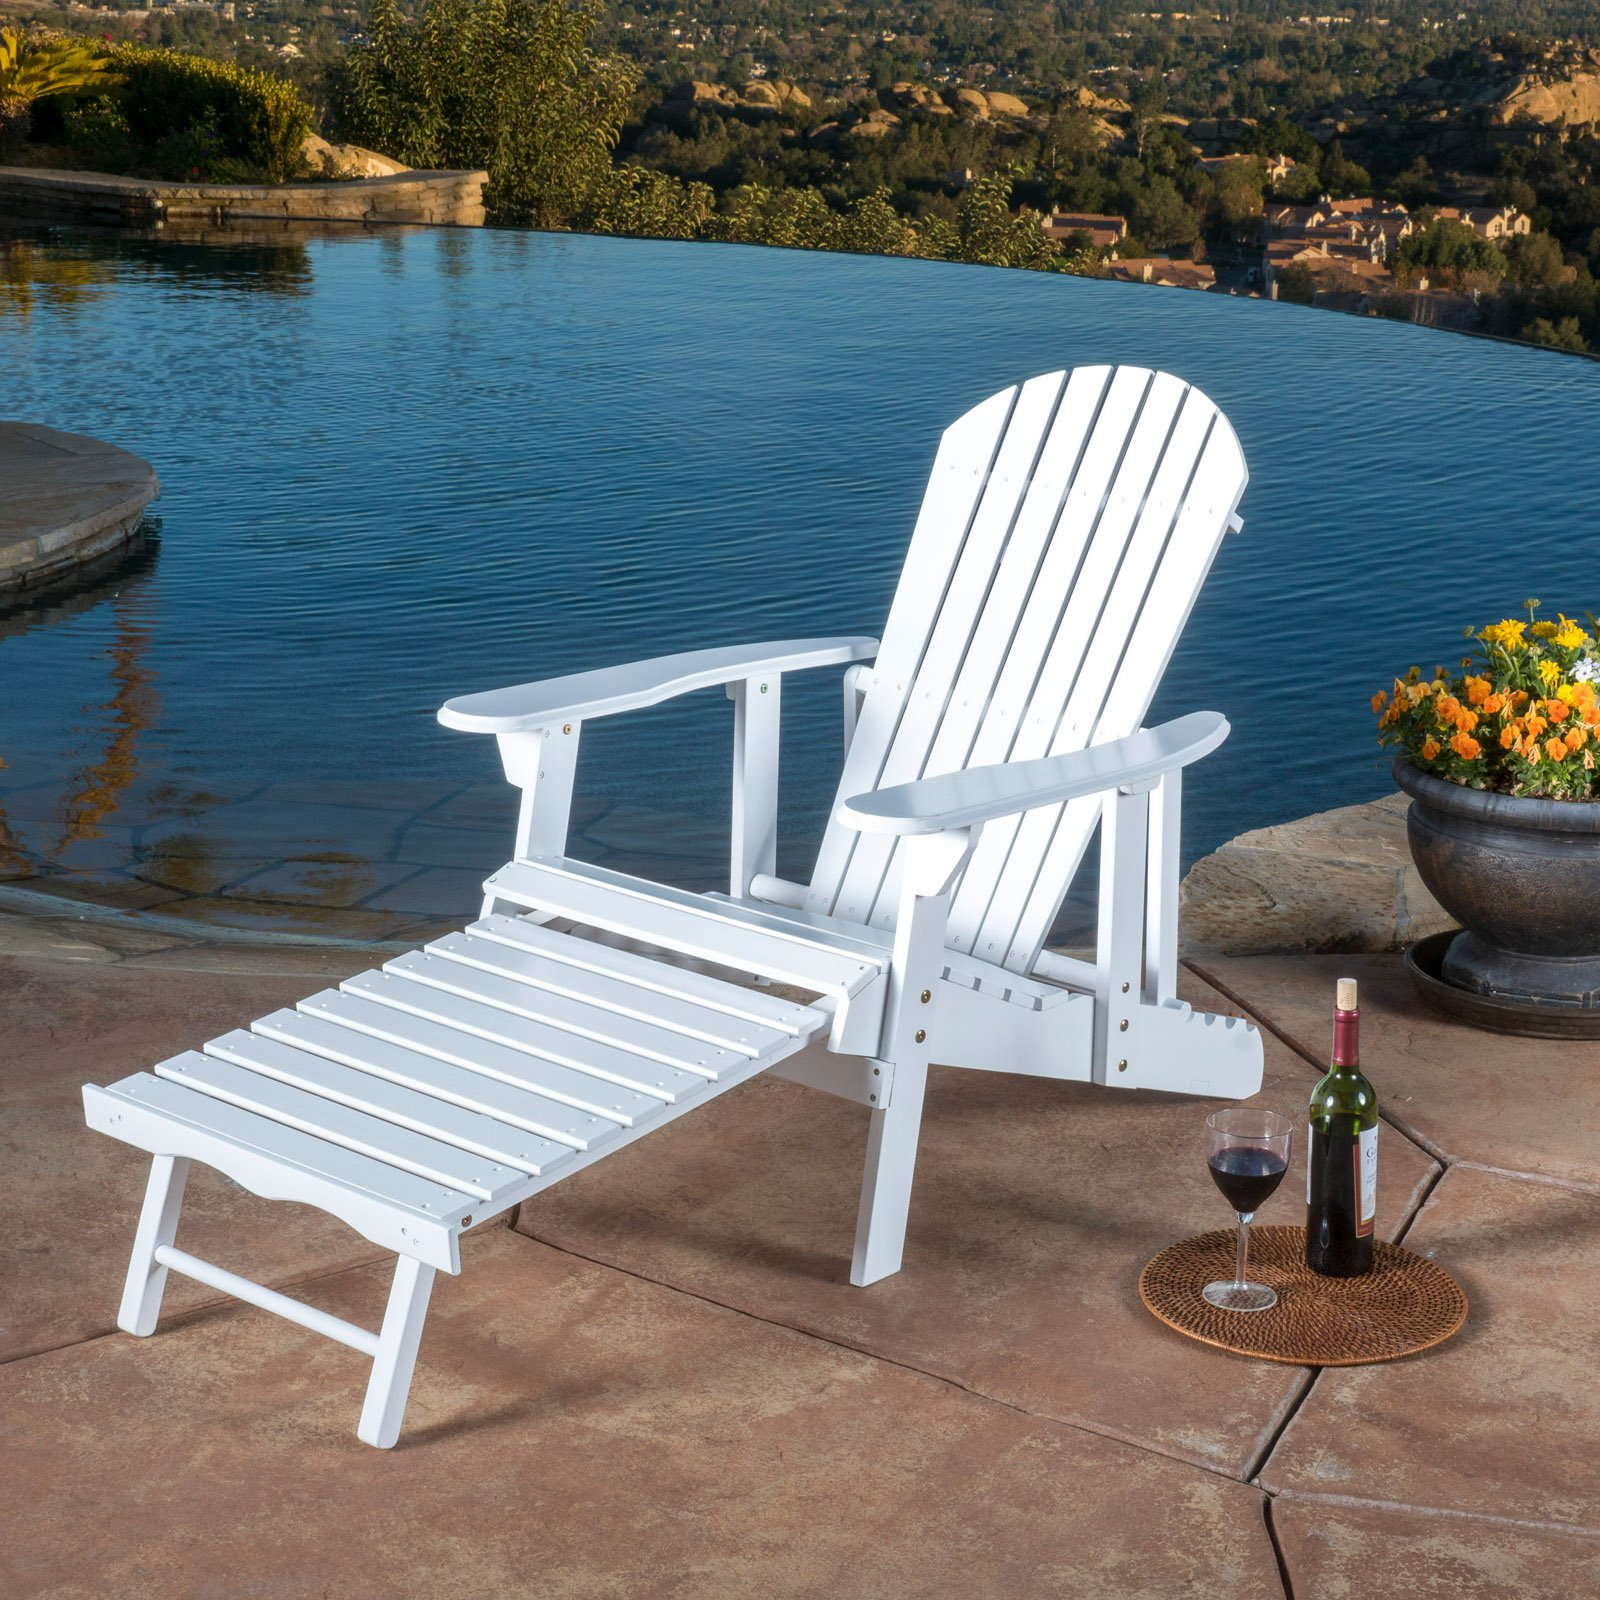 Hayle Reclining Outdoor Adirondack Chair with Footrest